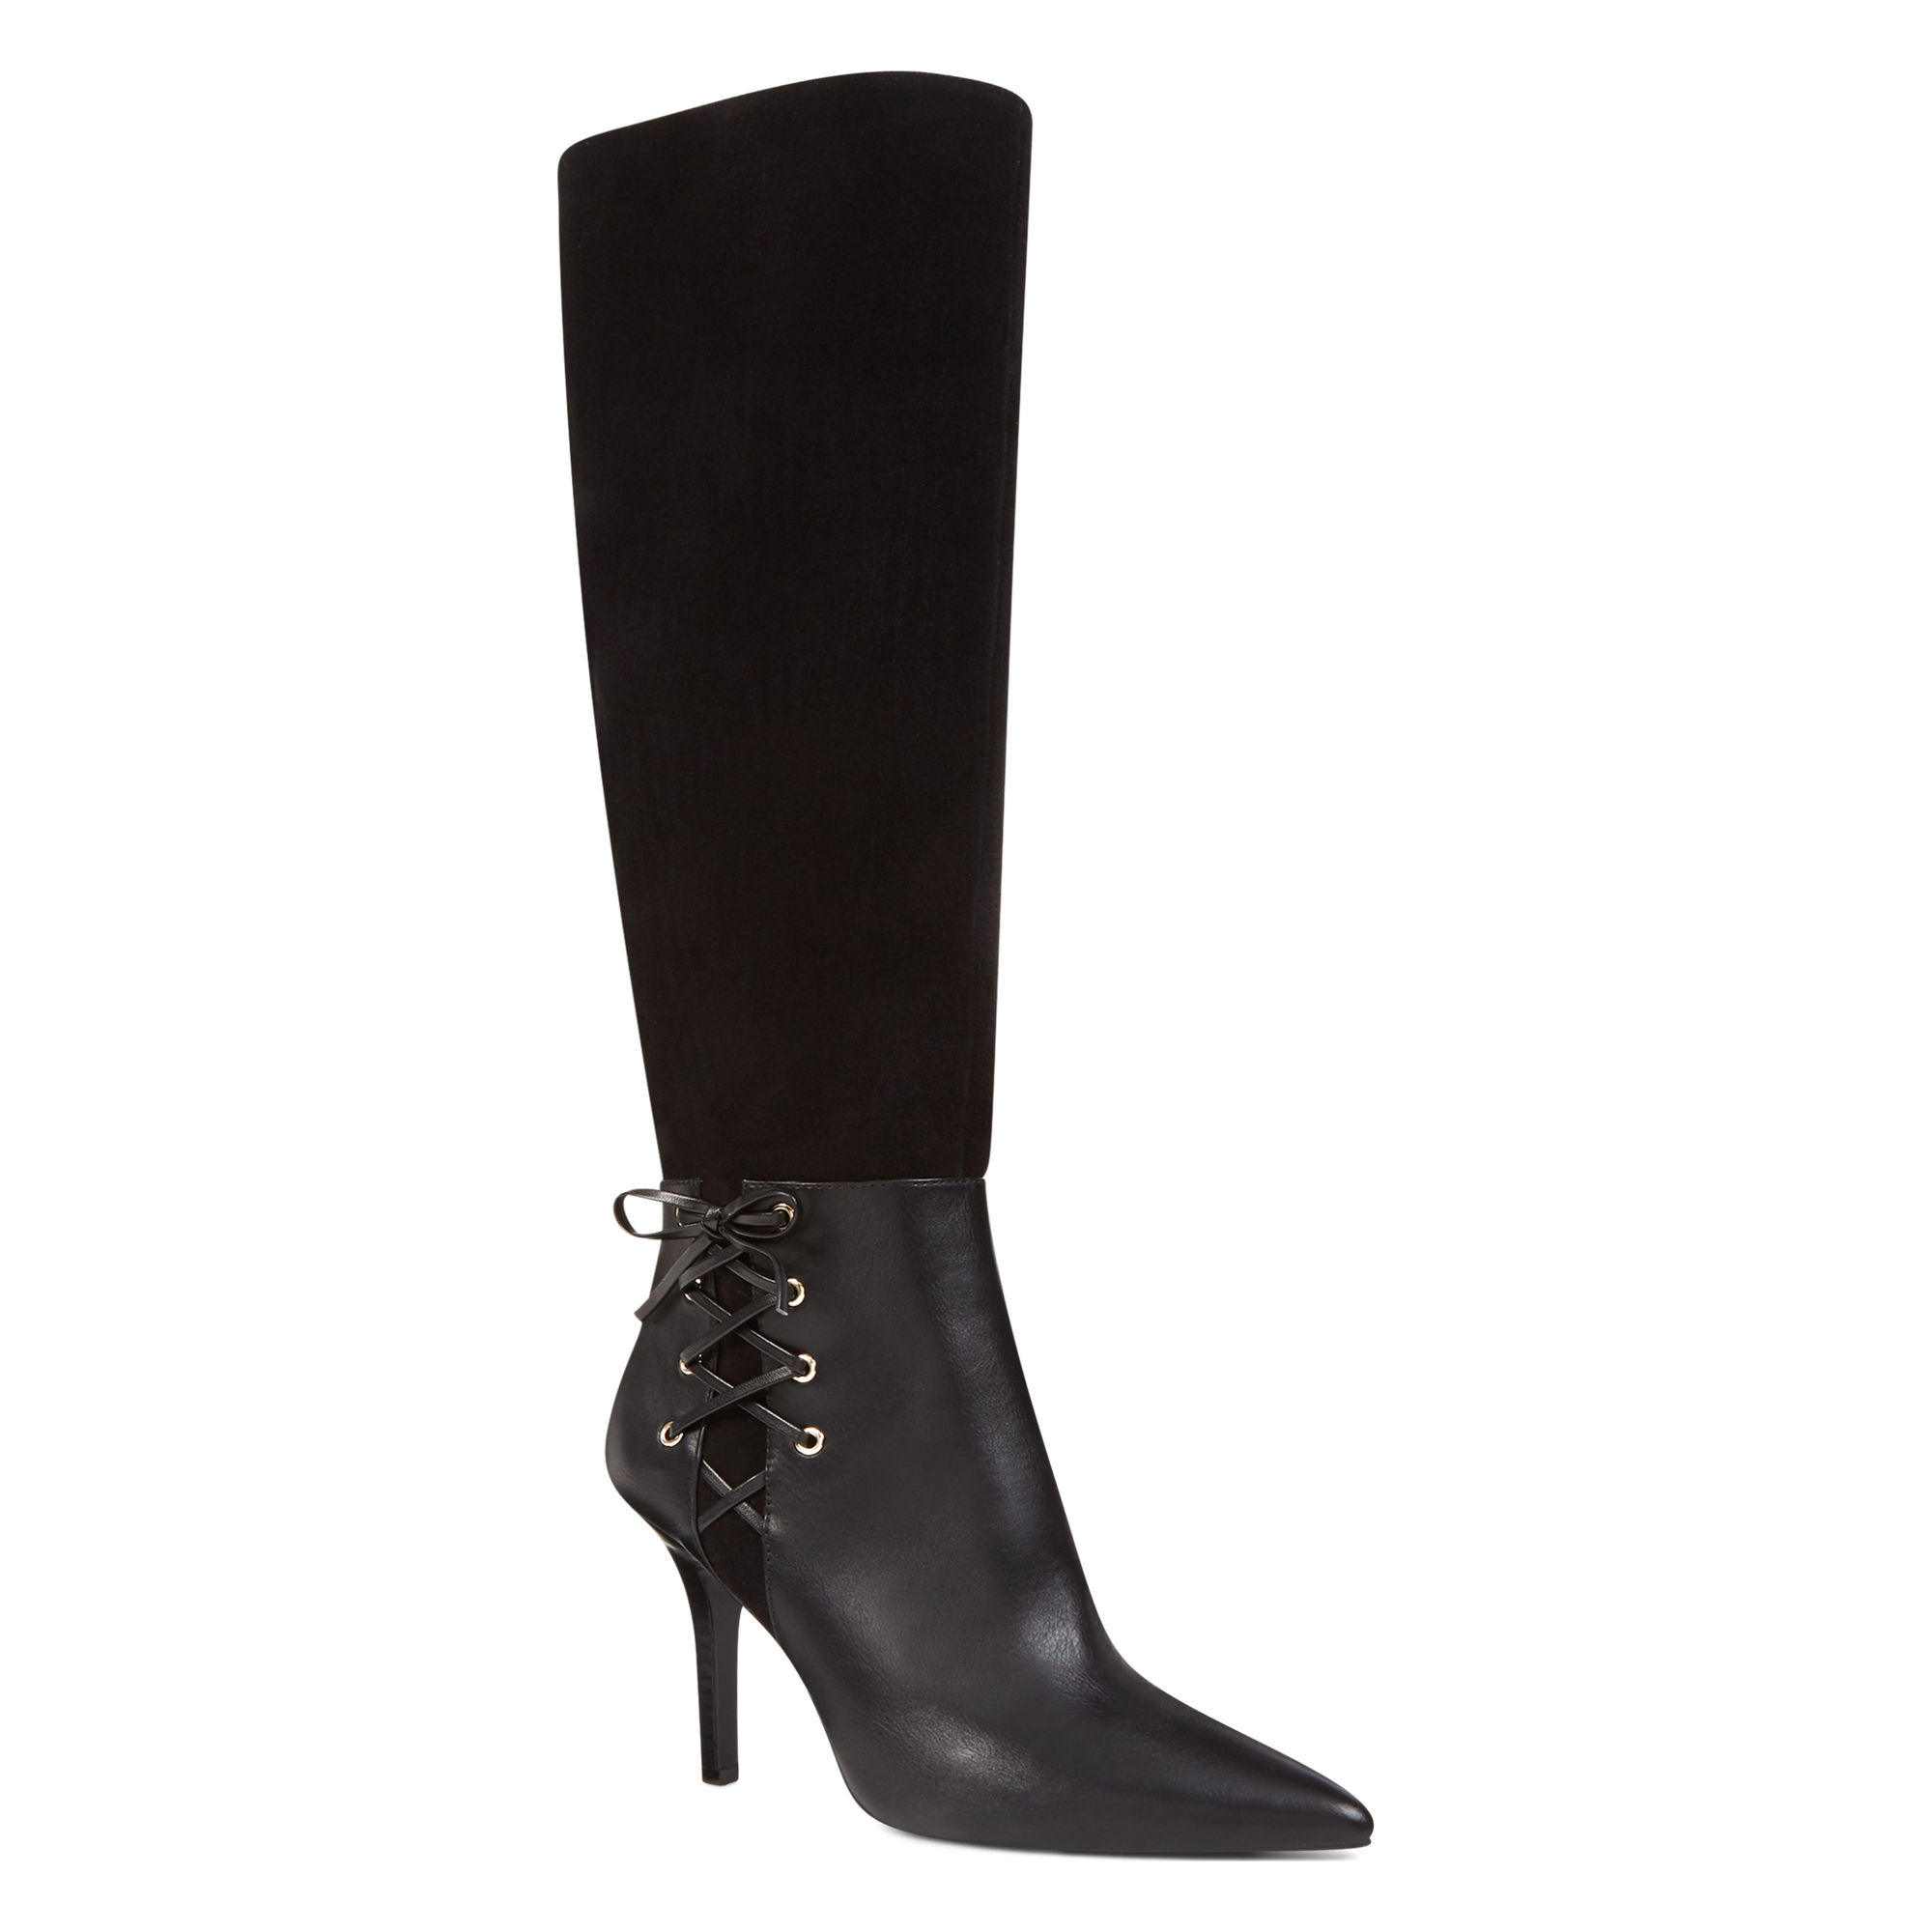 Nine West's Jeliza Tall Boots